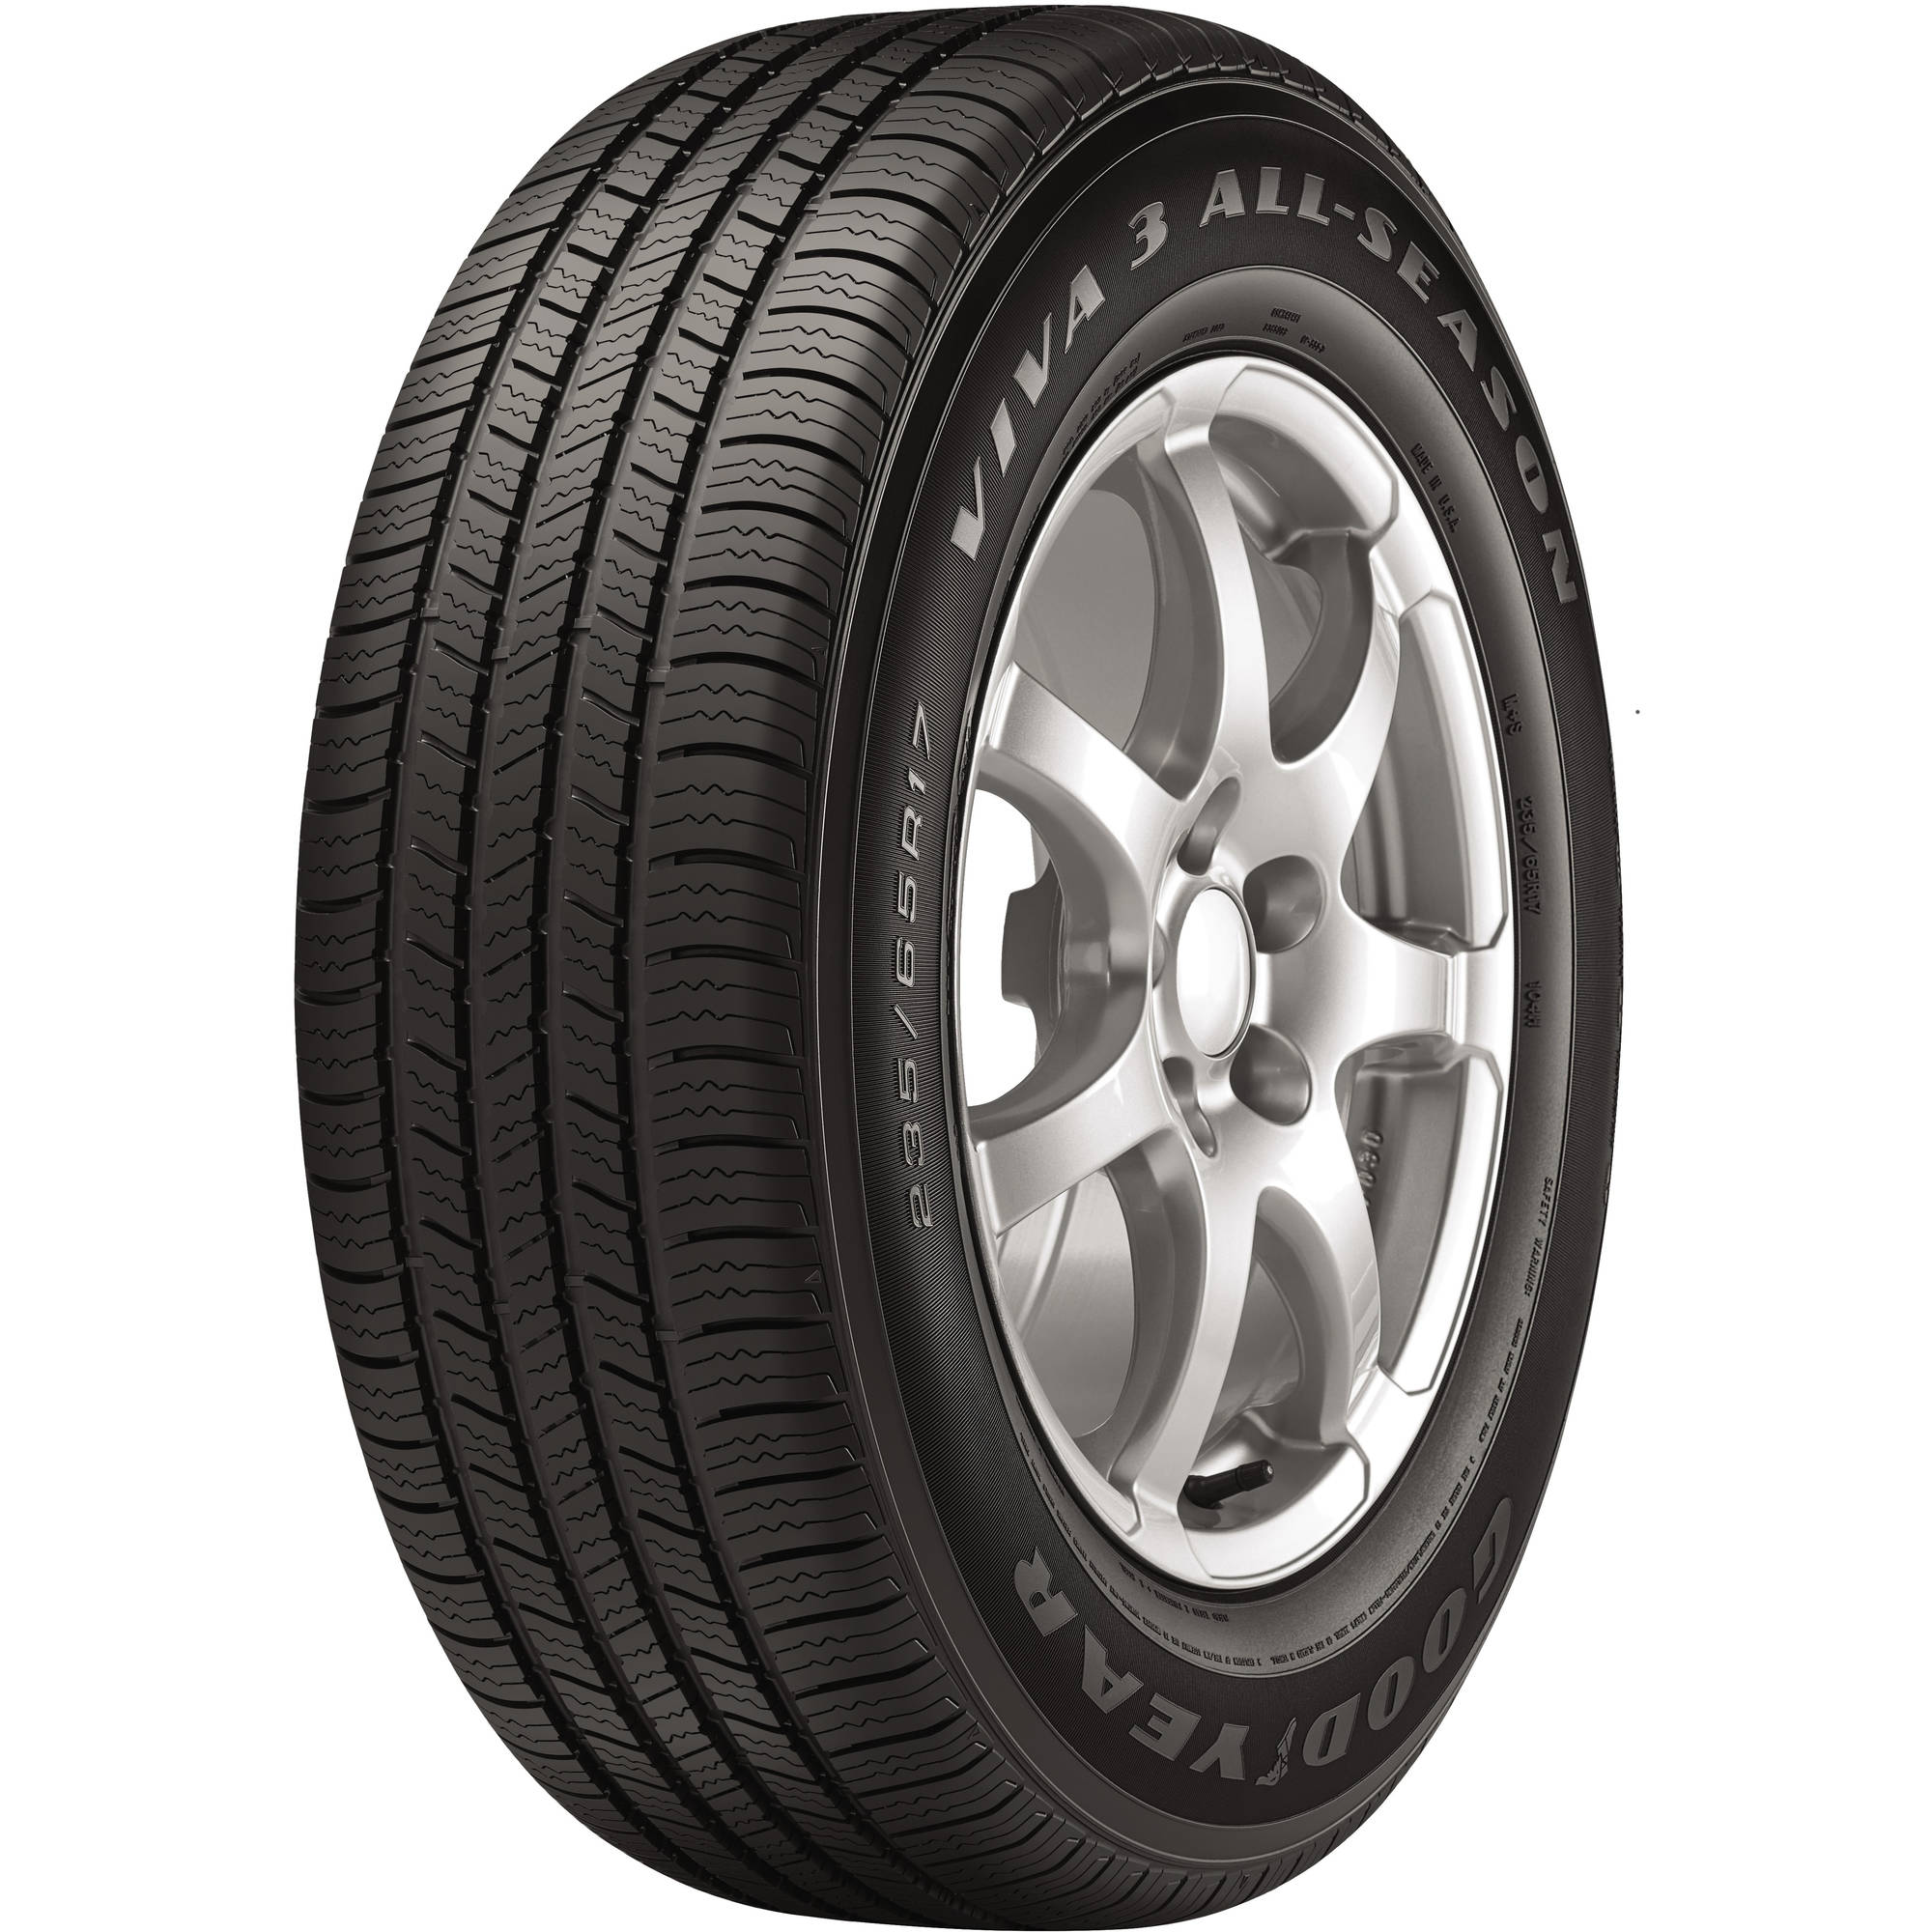 Goodyear Viva 3 All-Season Tire 235/55R18 100H